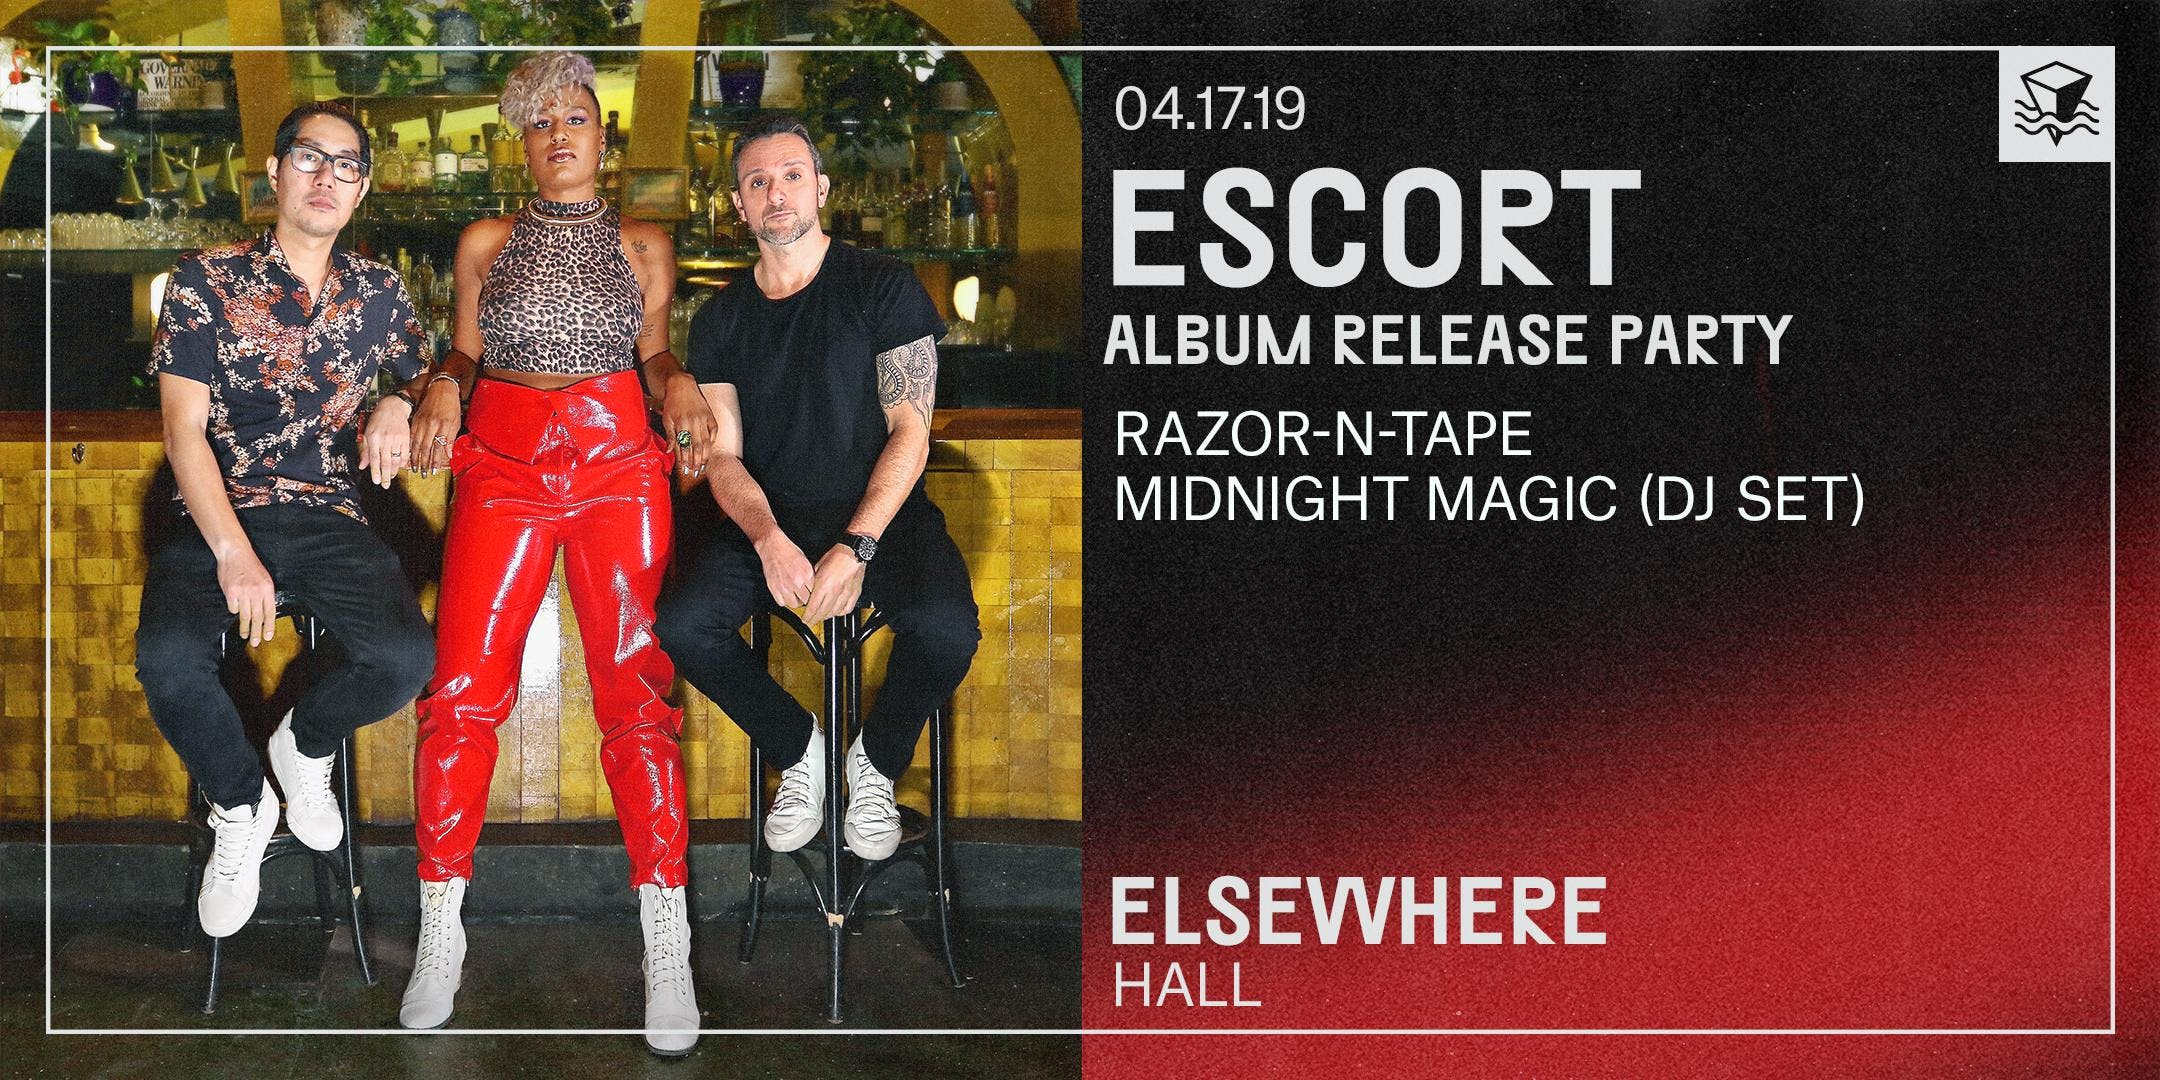 Escort (Album Release Party!)